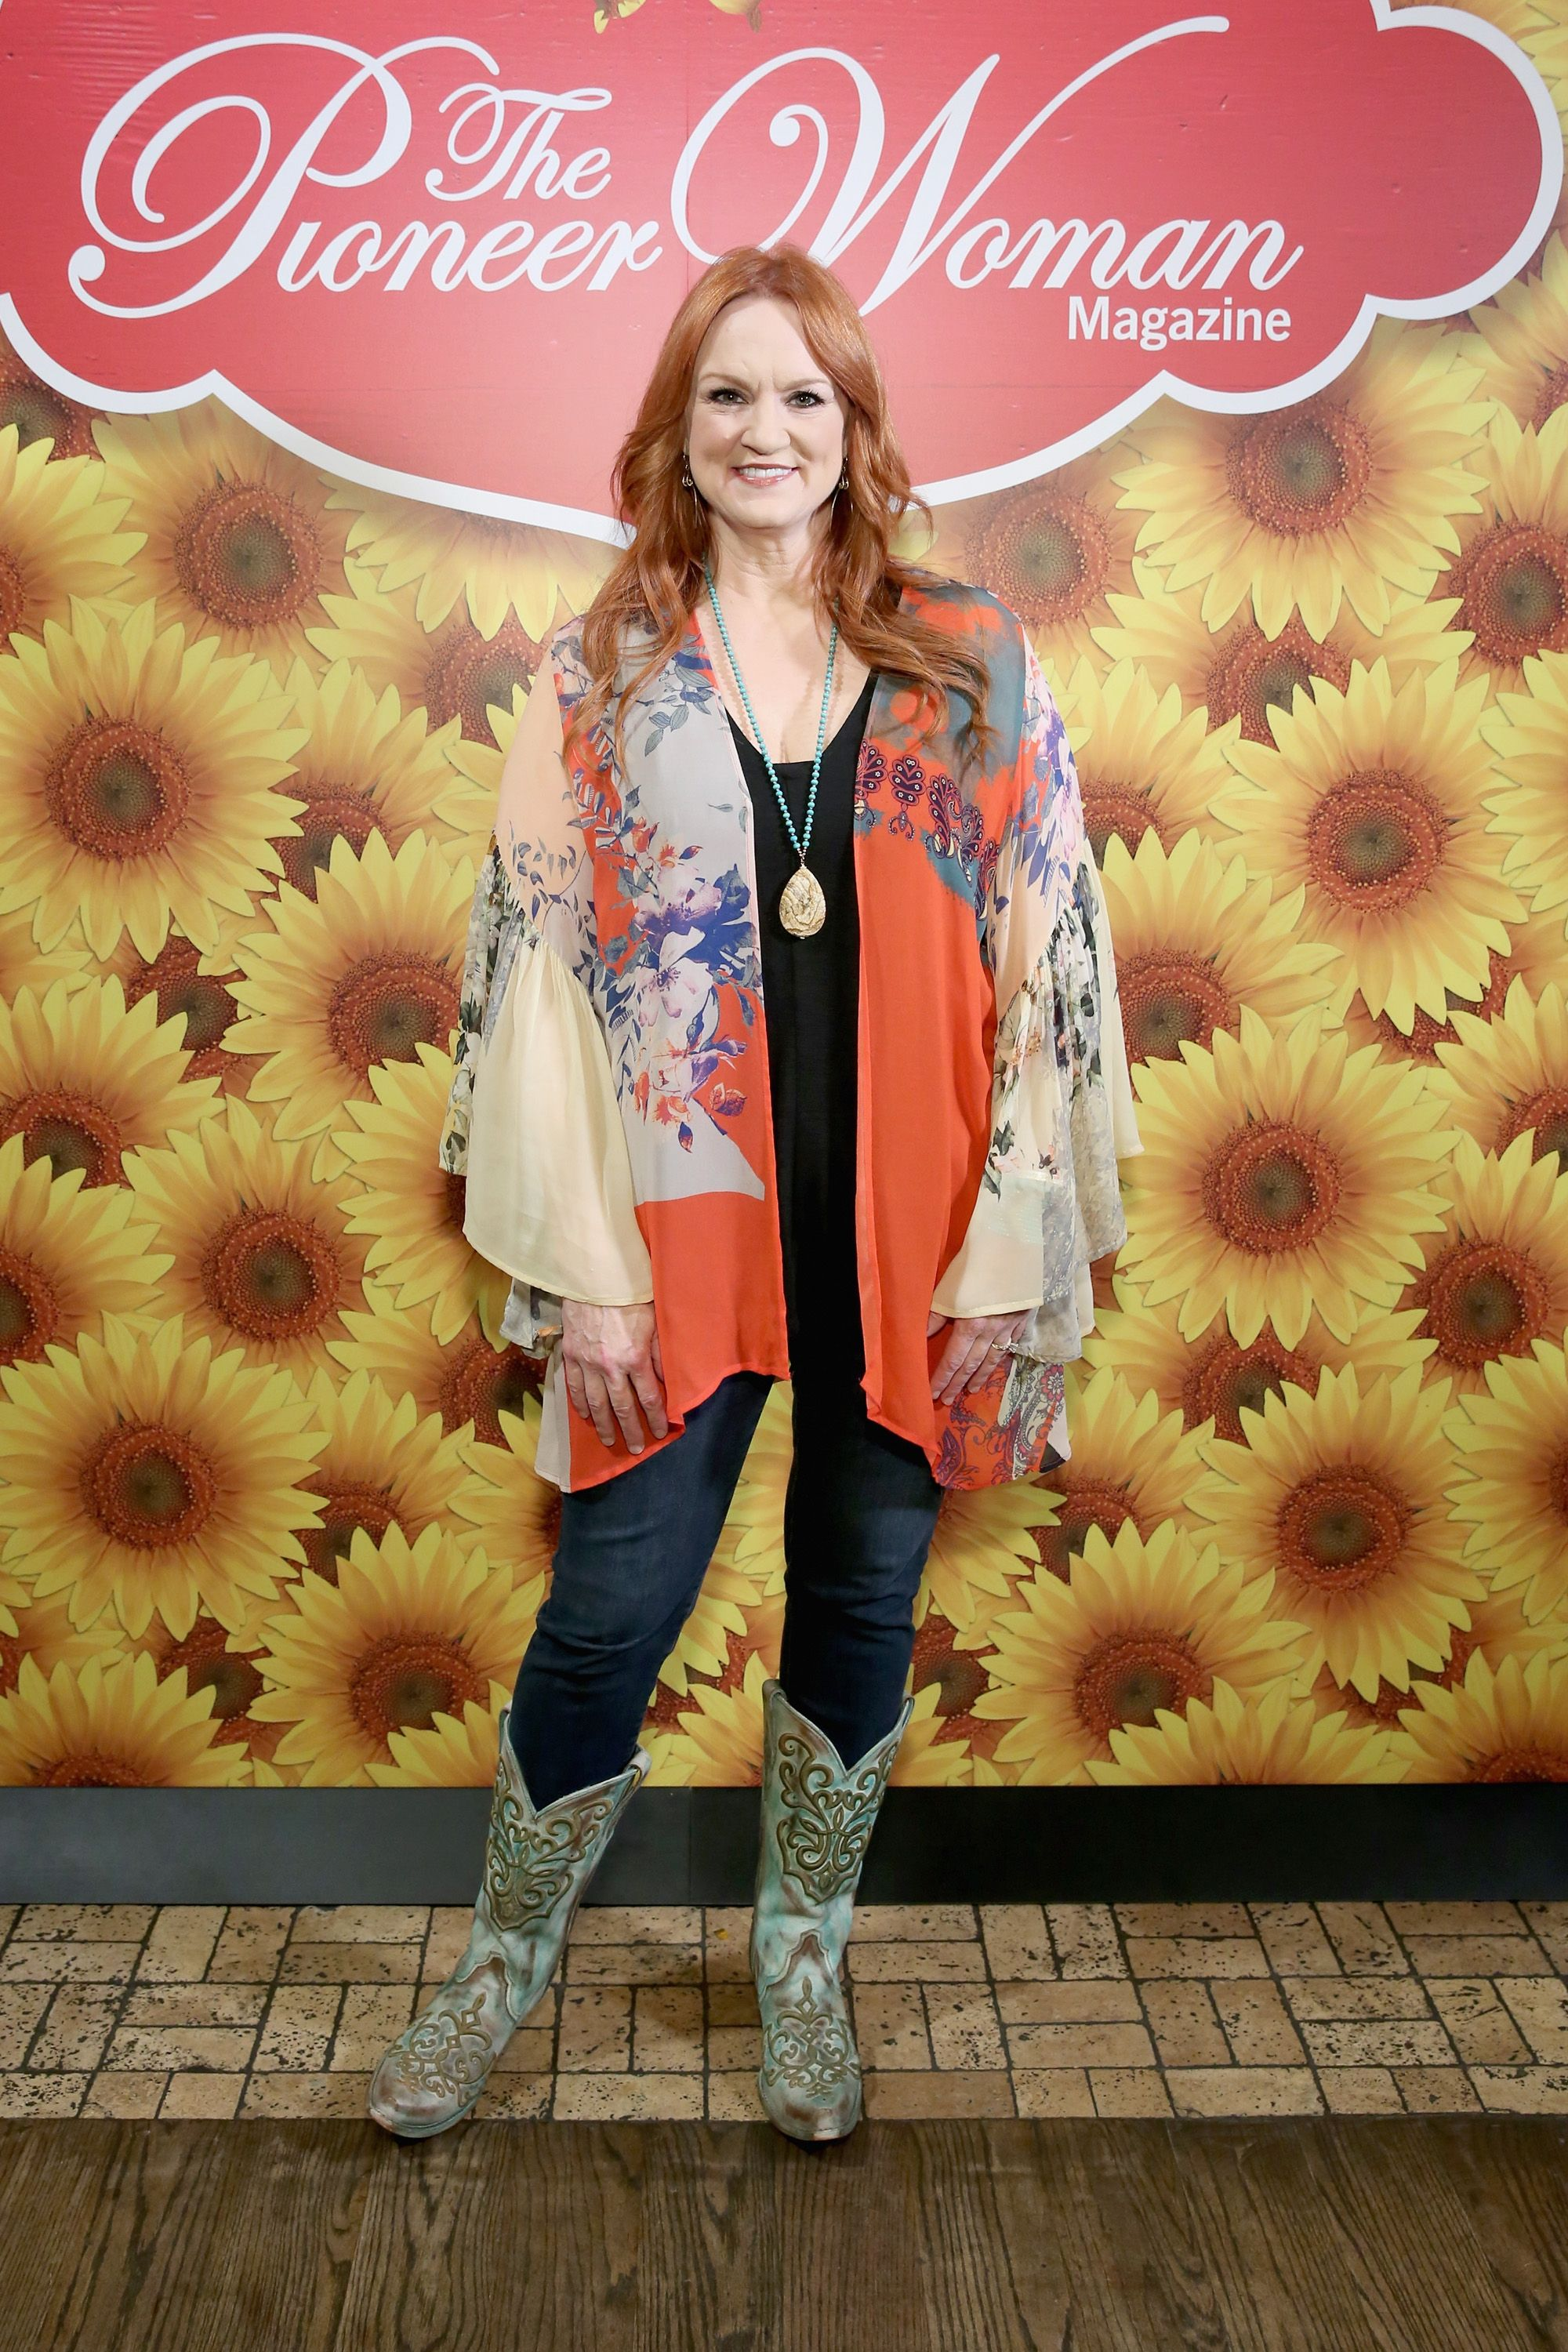 Ree Drummond attends The Pioneer Woman Magazine Celebration with Ree Drummond at The Mason Jar on June 6, 2017 in New York City. | Photo: Getty Images